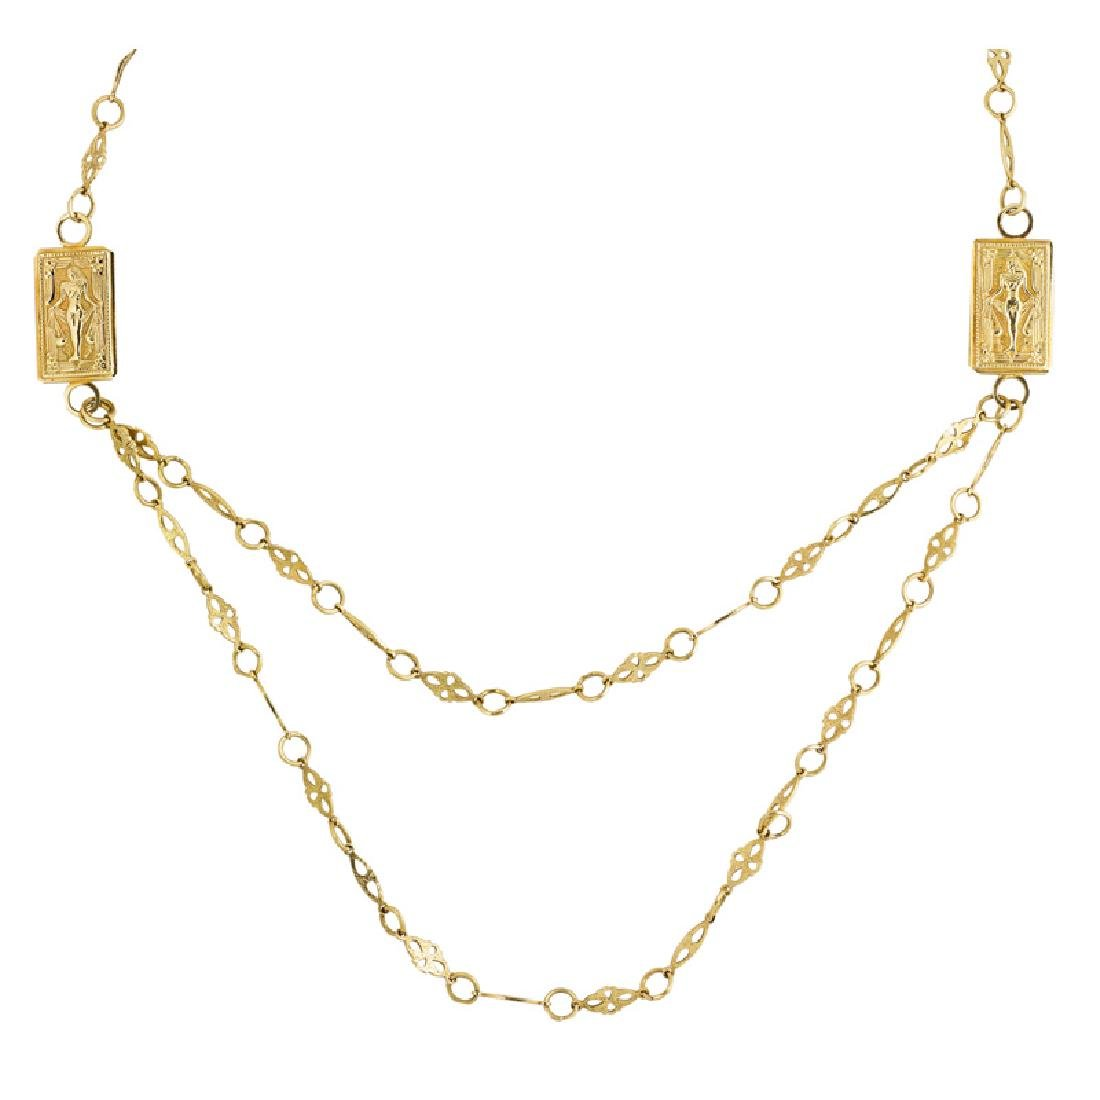 EGYPTIAN REVIVAL YELLOW GOLD NECKLACE